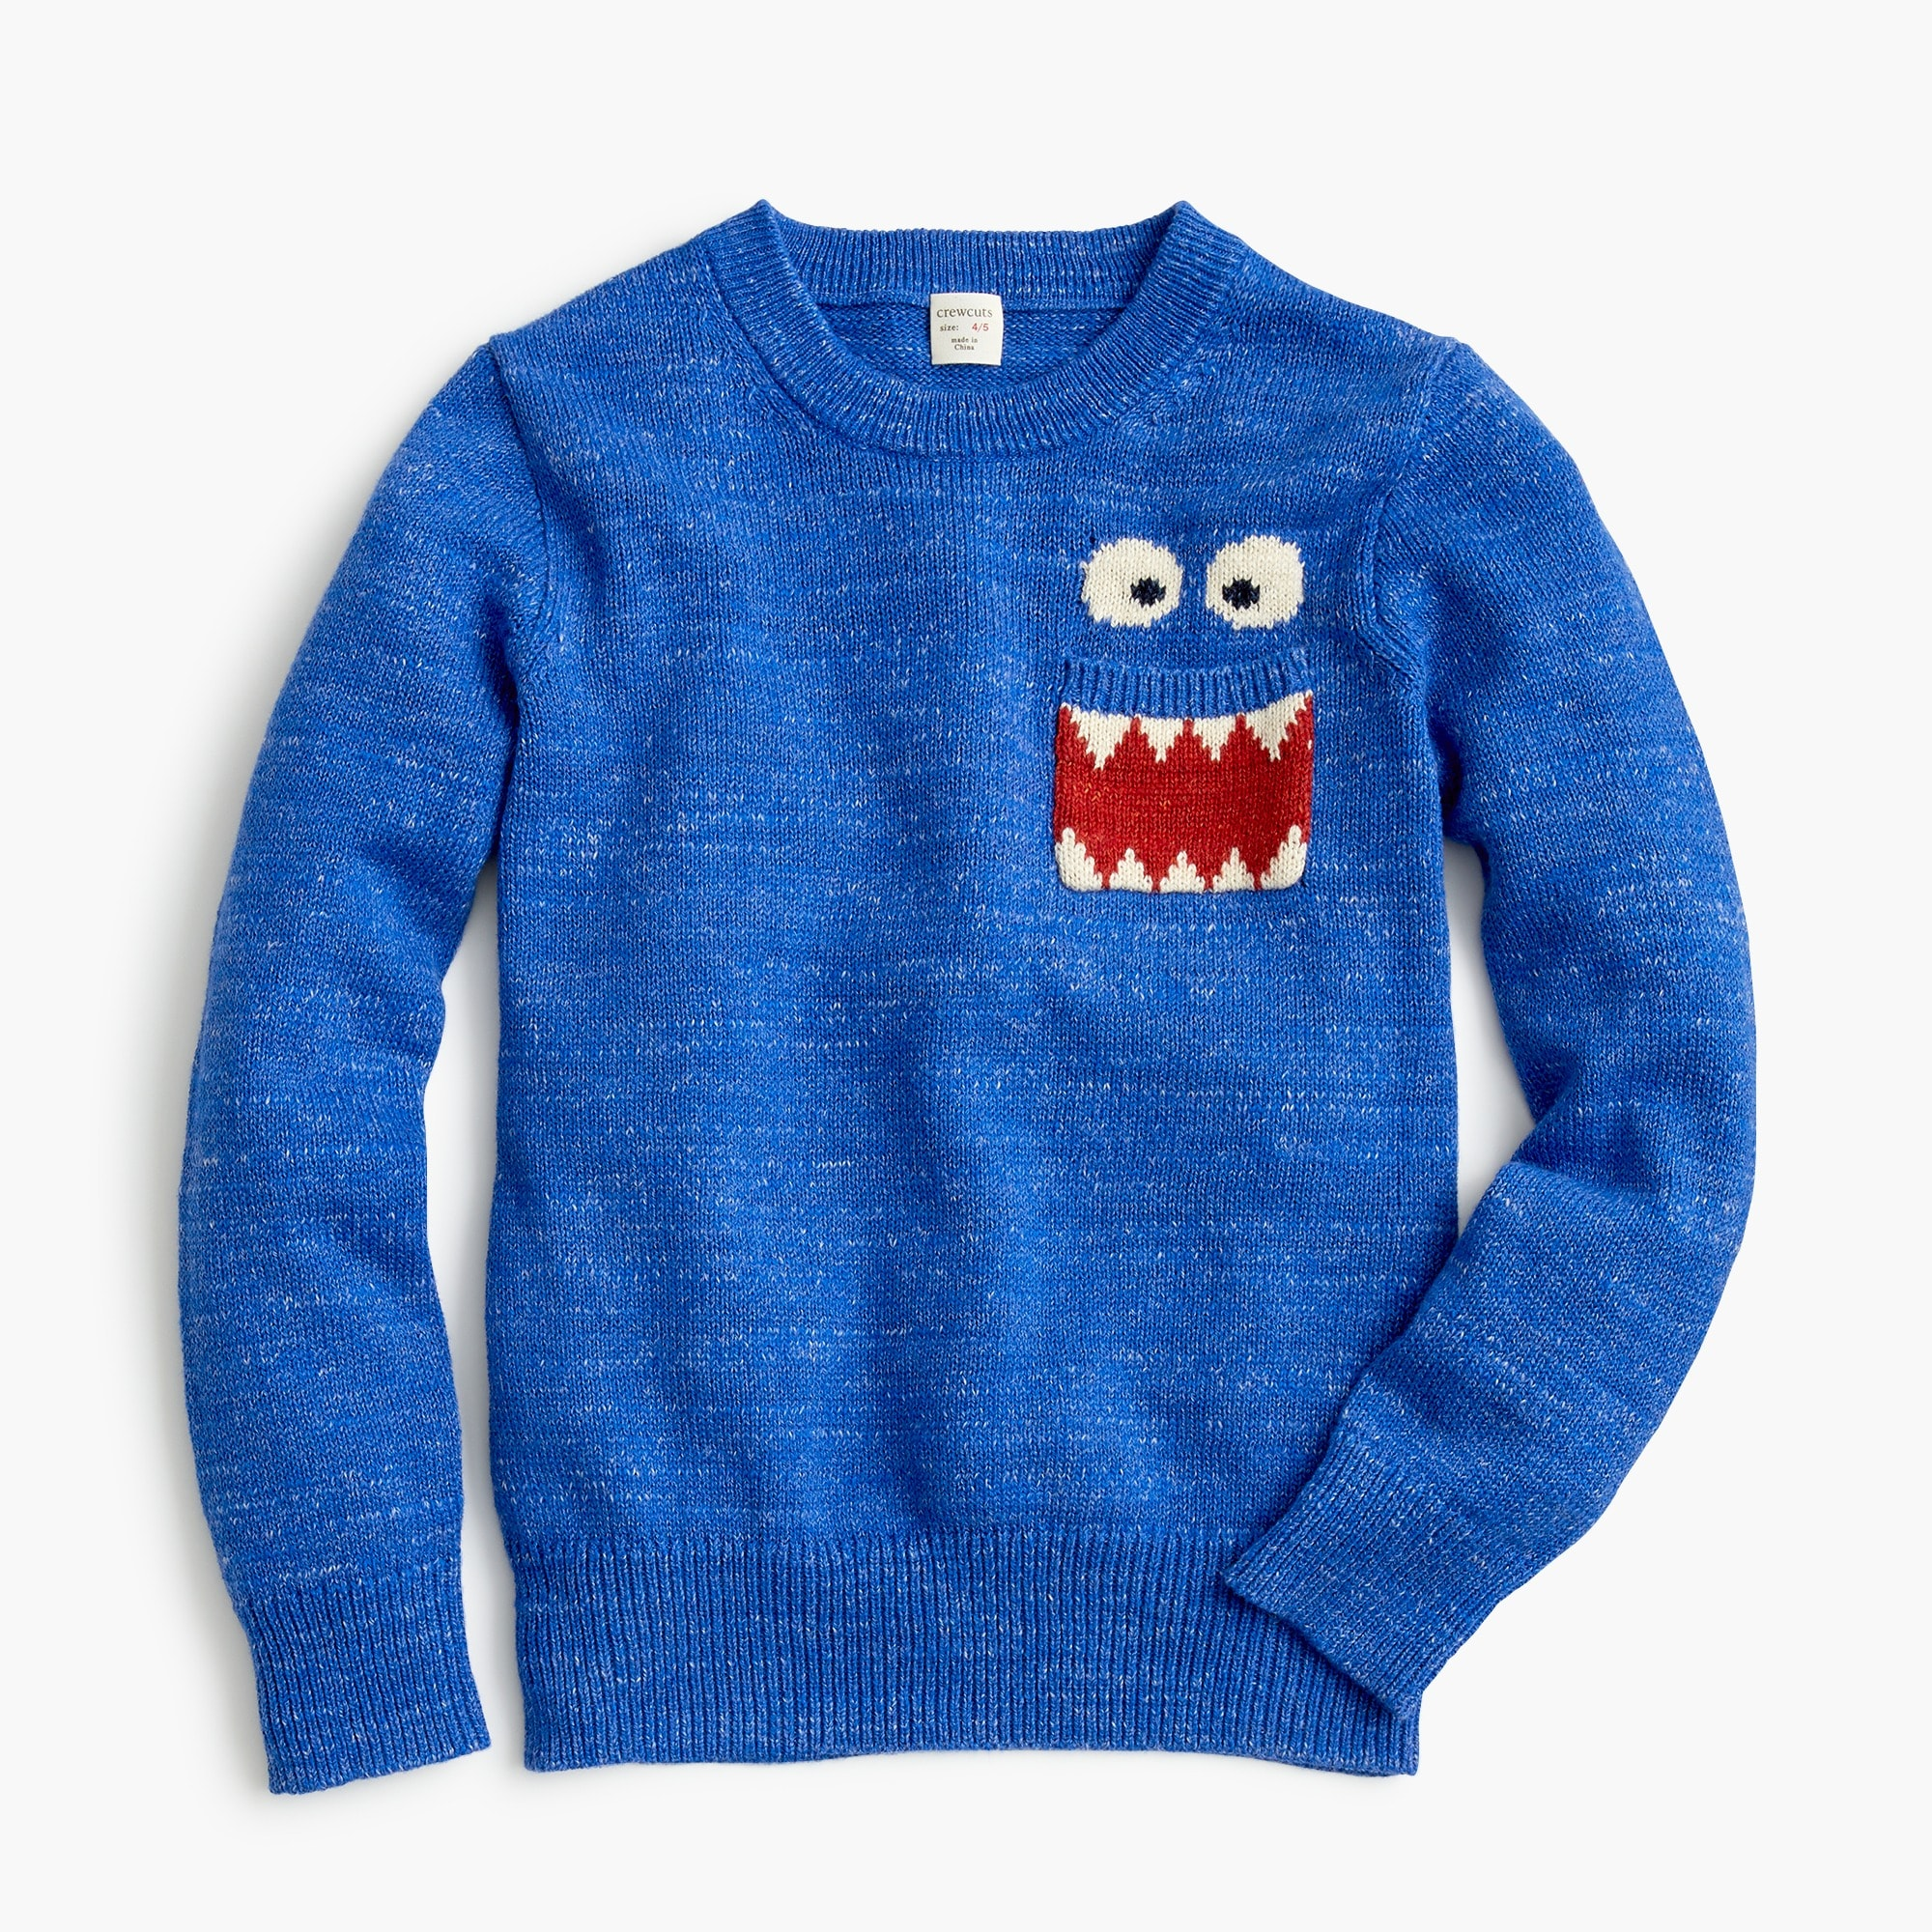 boys Max the Monster™ boys' cotton crewneck sweater